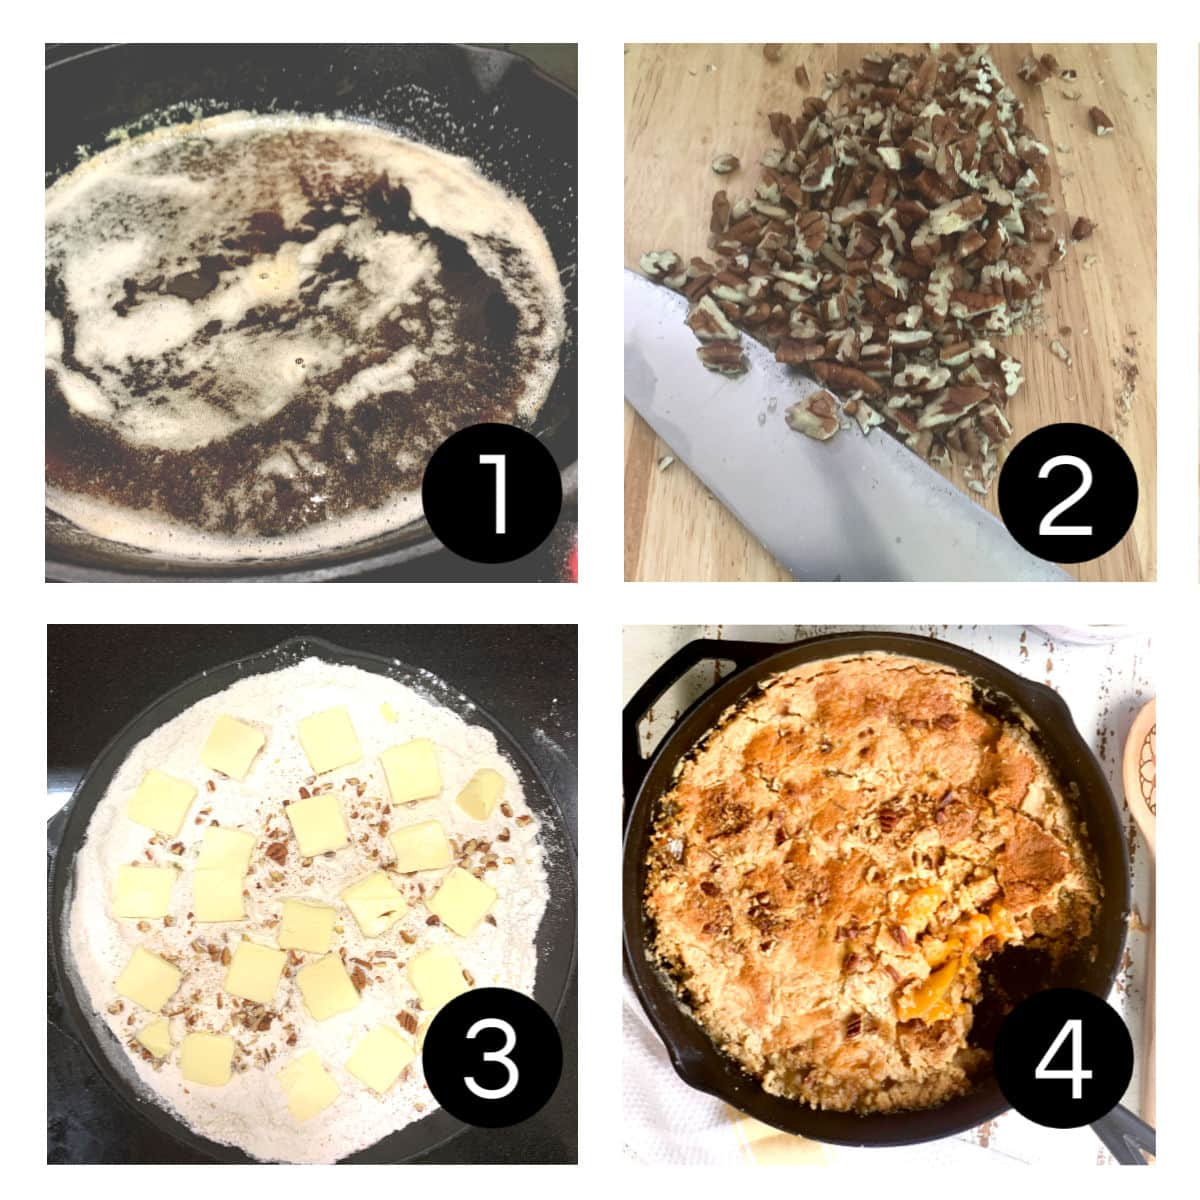 Step by step images showing how to make the dump cake.